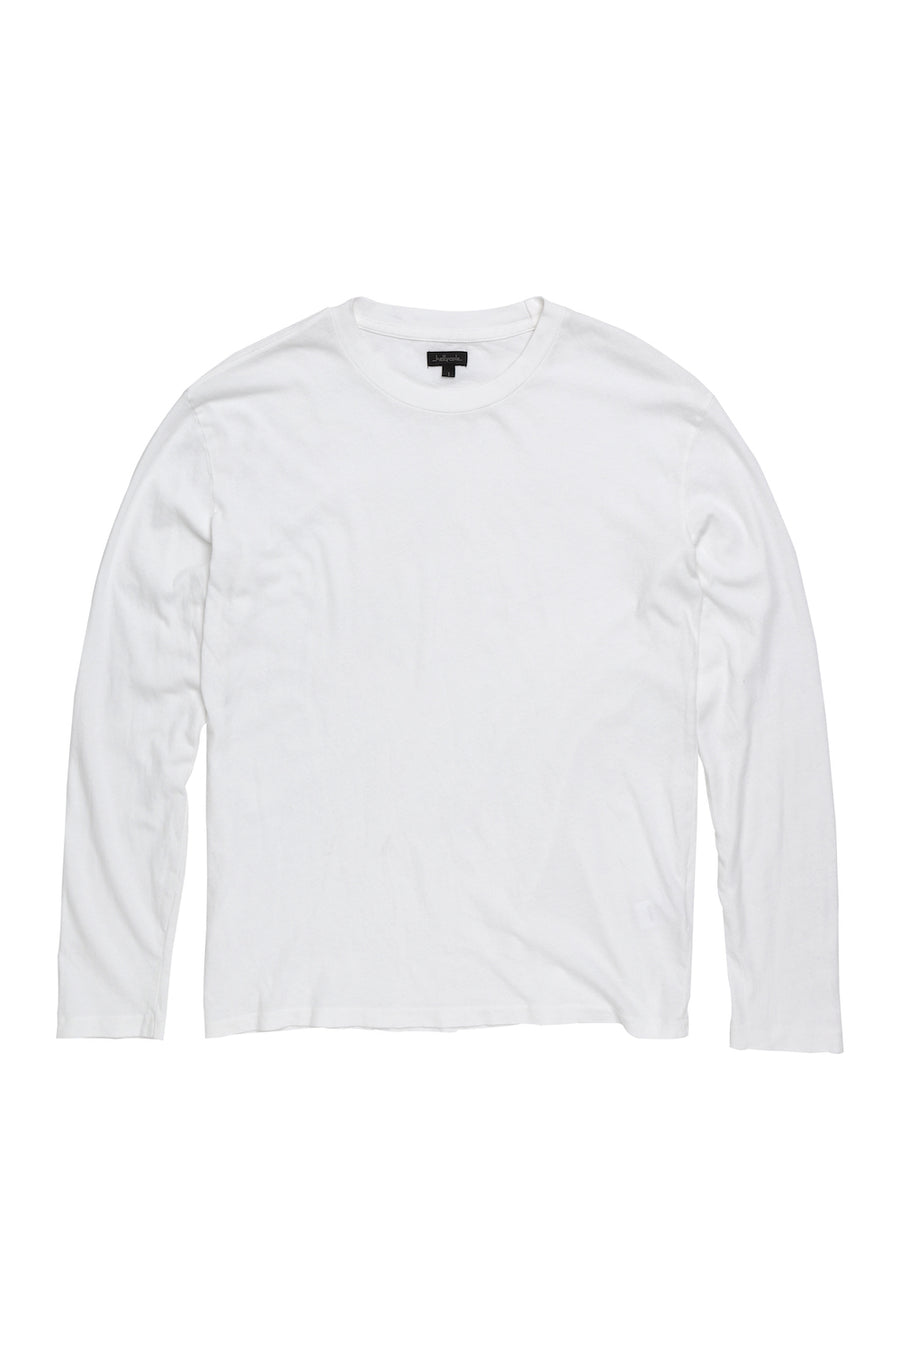 Long Sleeve Loose Knit Crewneck T Shirt - Optic White